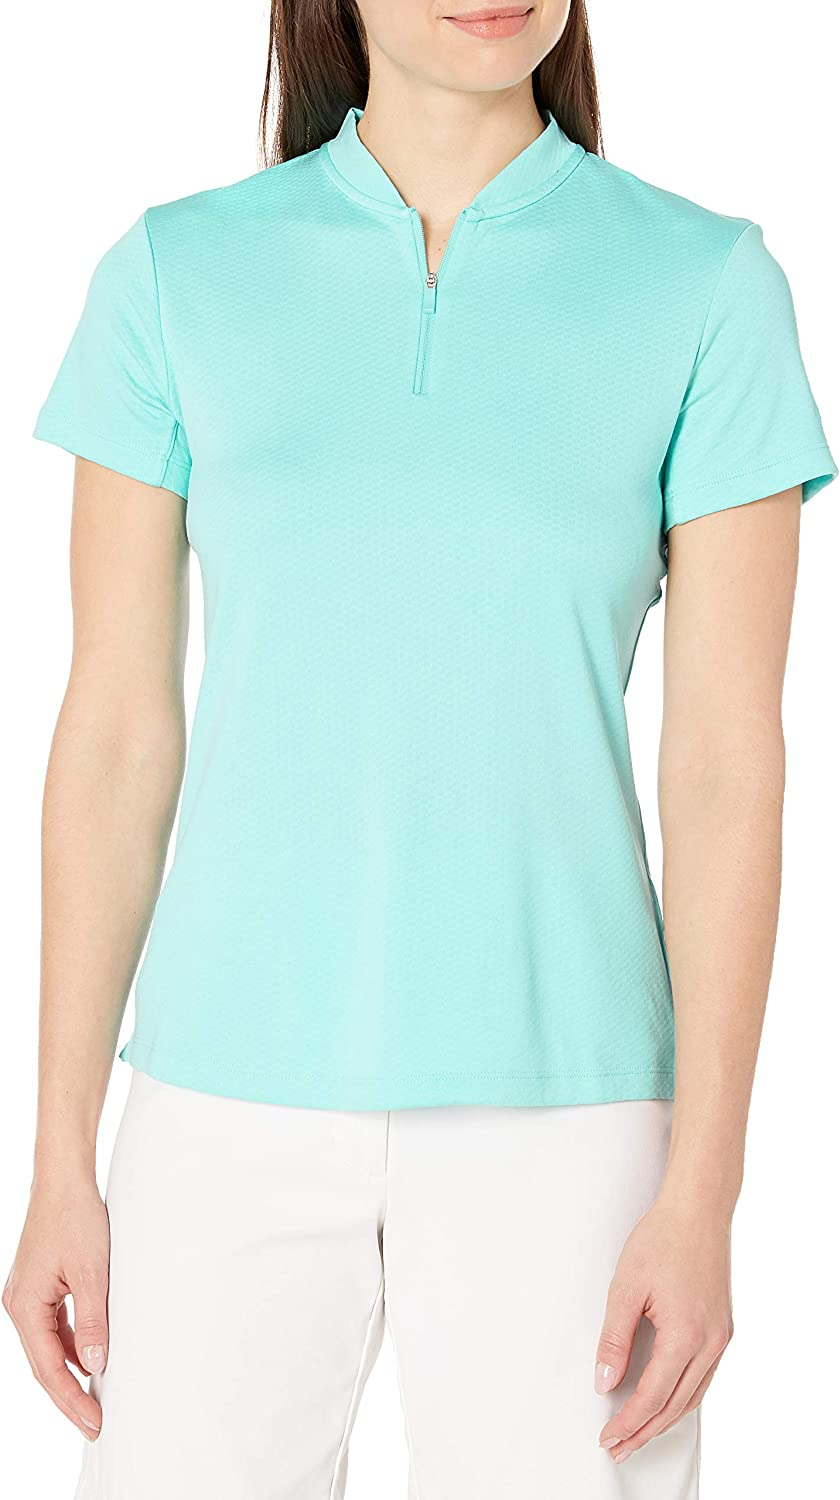 Super popular specialty store Nike Women's Dedication Dry Polo Short Chest Sleeve Open Left Blade